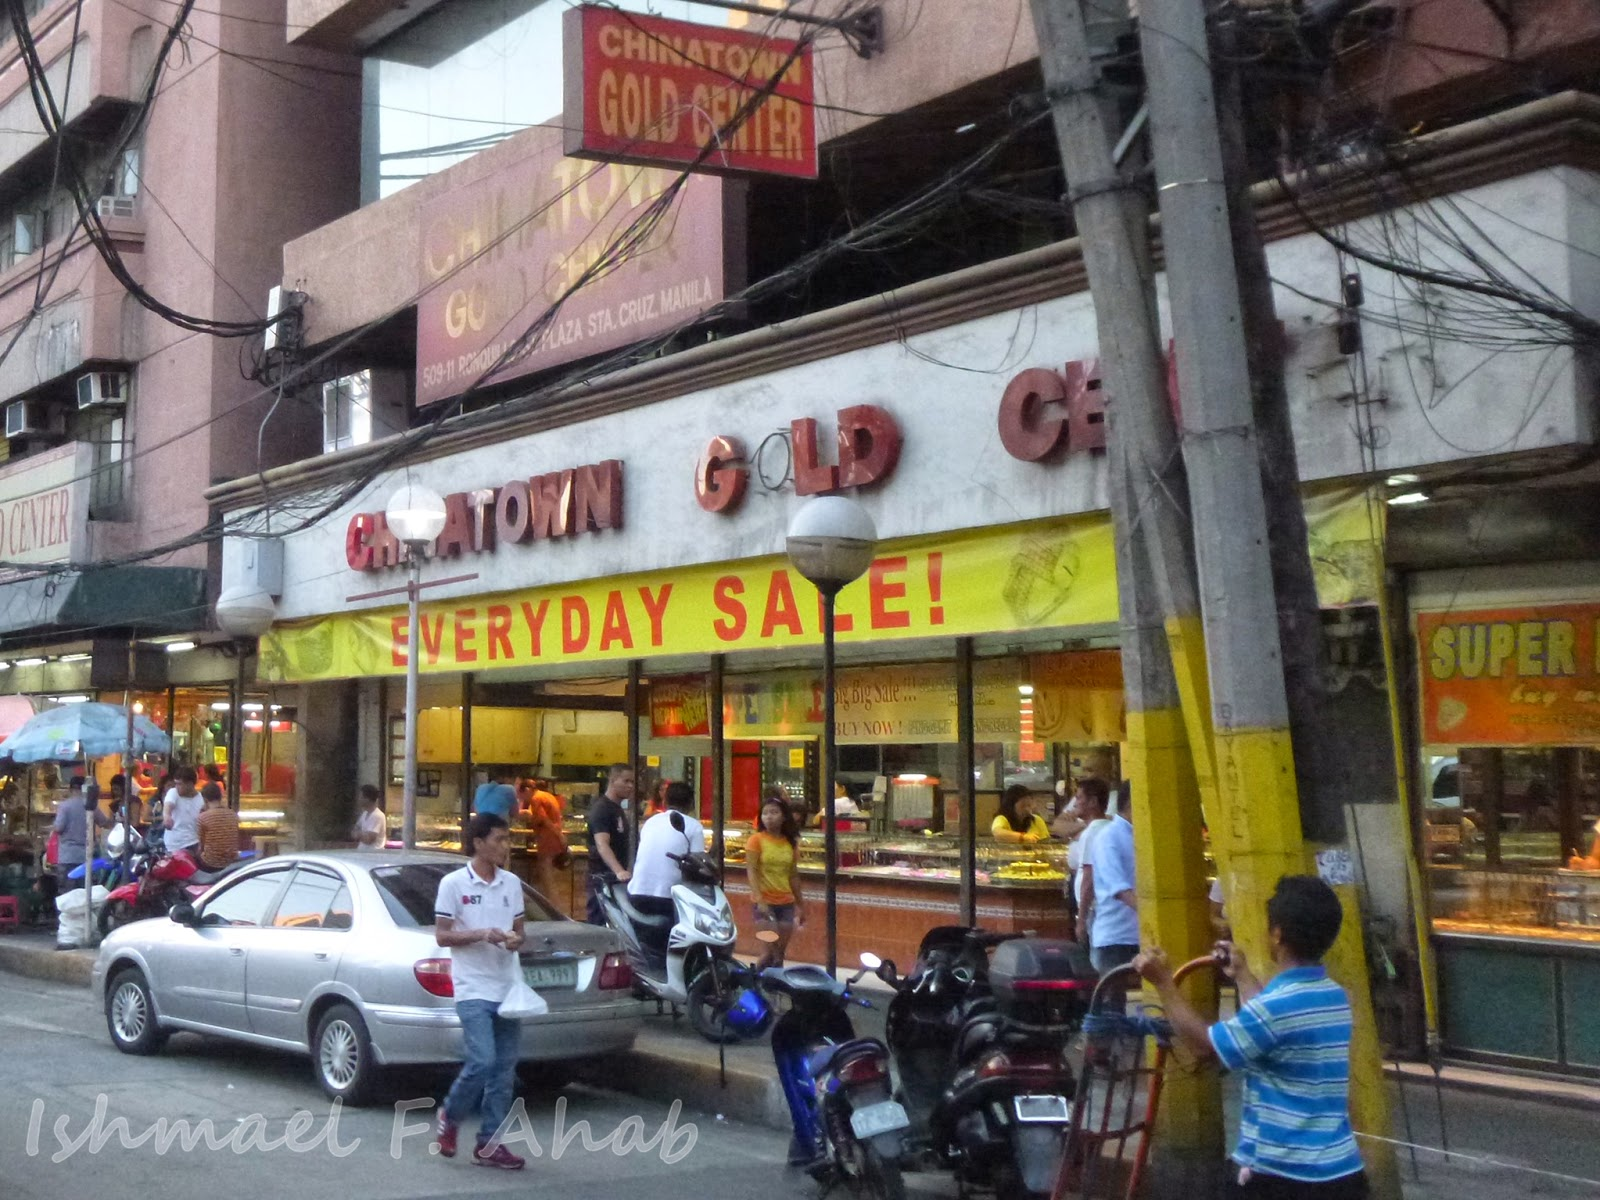 searching for wedding rings and a bad day in binondo